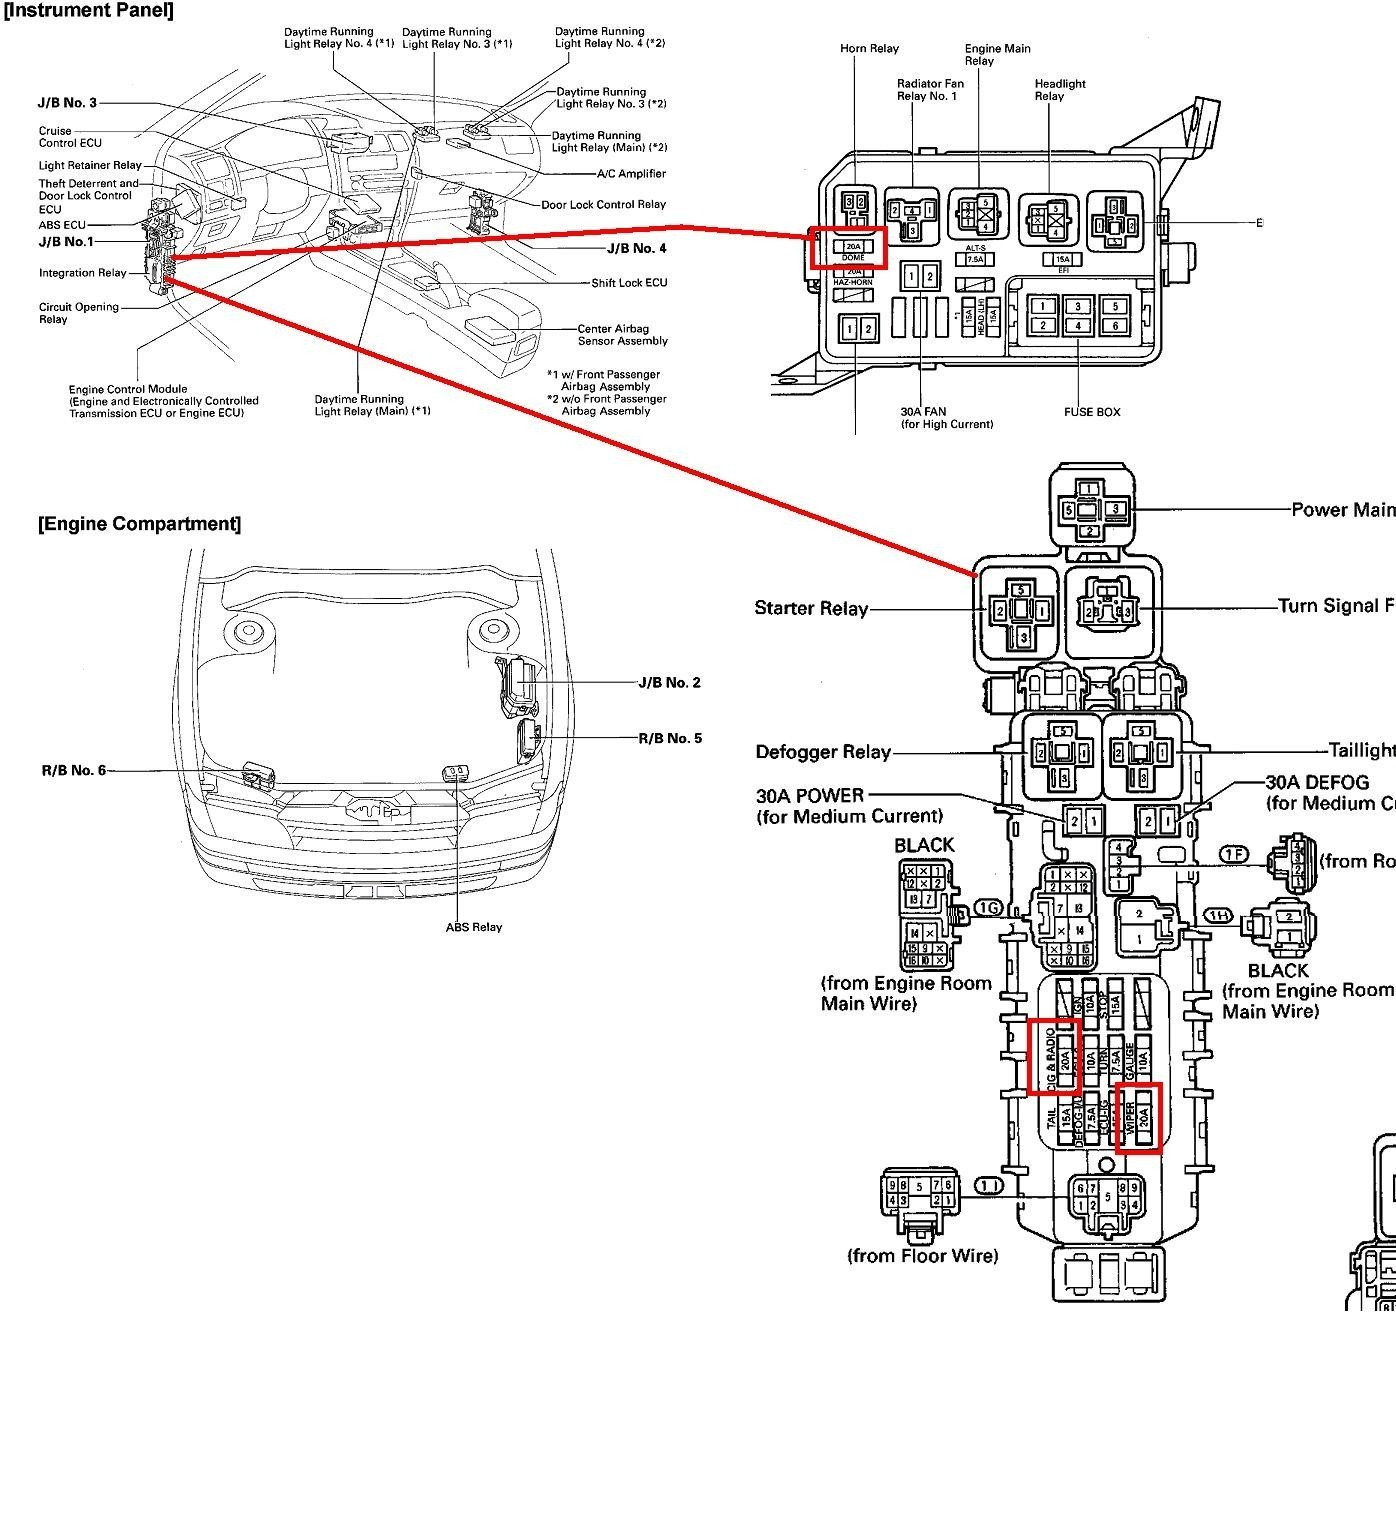 Toyota Corolla 2000 Engine Diagram 1991 Wiring Related Post